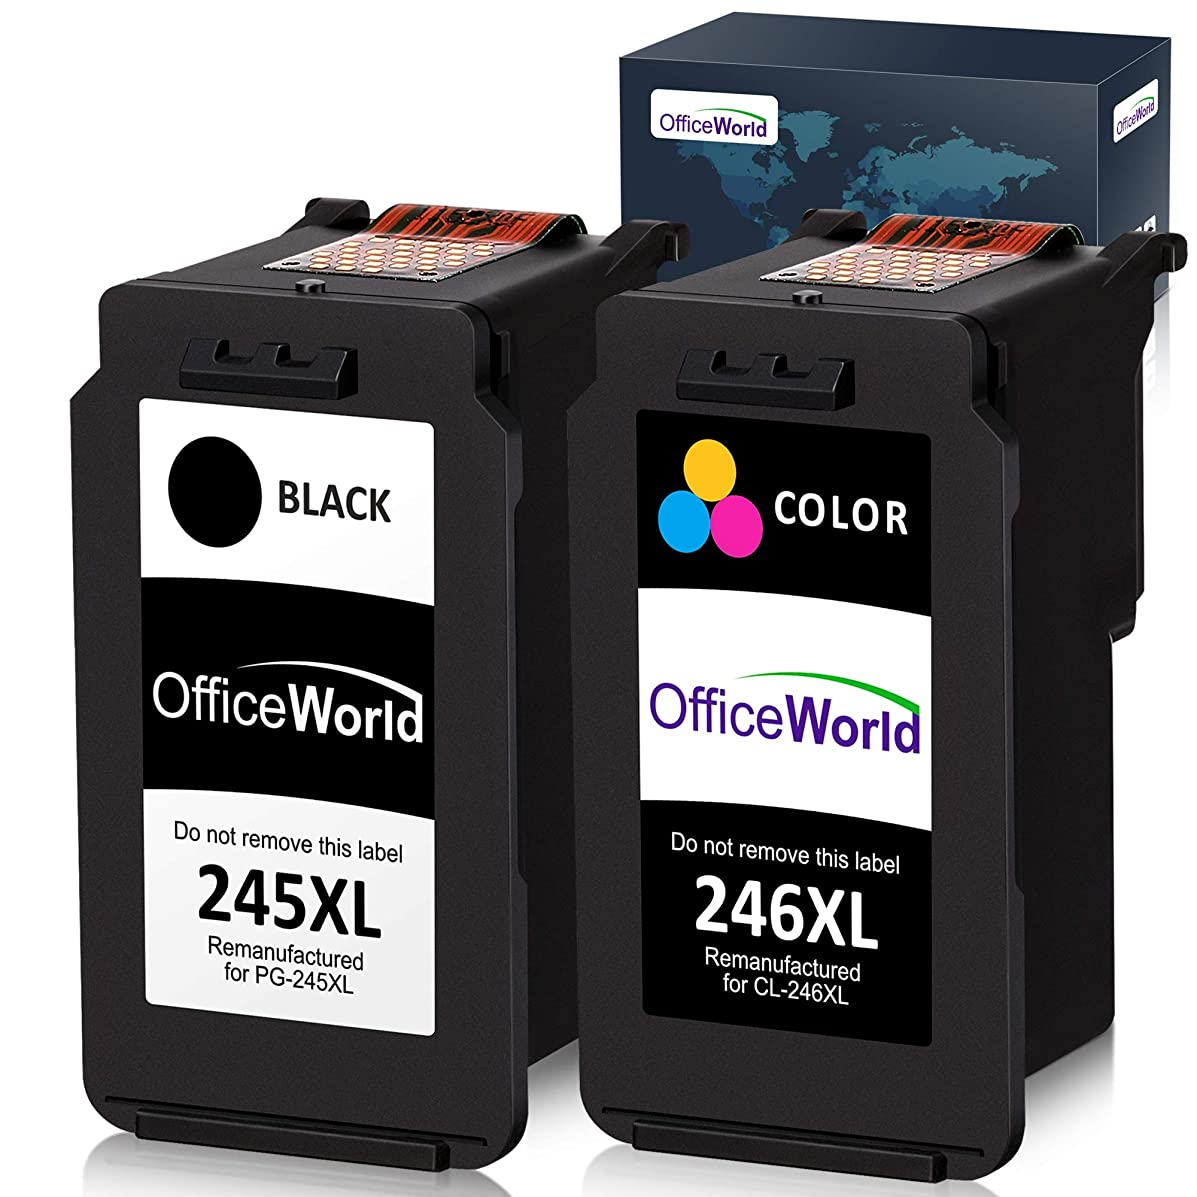 Office World Remanufactured Ink Cartridge Replacement for Canon PG-245XL 245XL CL-246XL 246XL PG-243 for Pixma MX492 MG2920 MG2520 iP2820 MG2922 MG2420 MG2522 MG3022 MG2924 (1 Black + 1 Tri-Color)